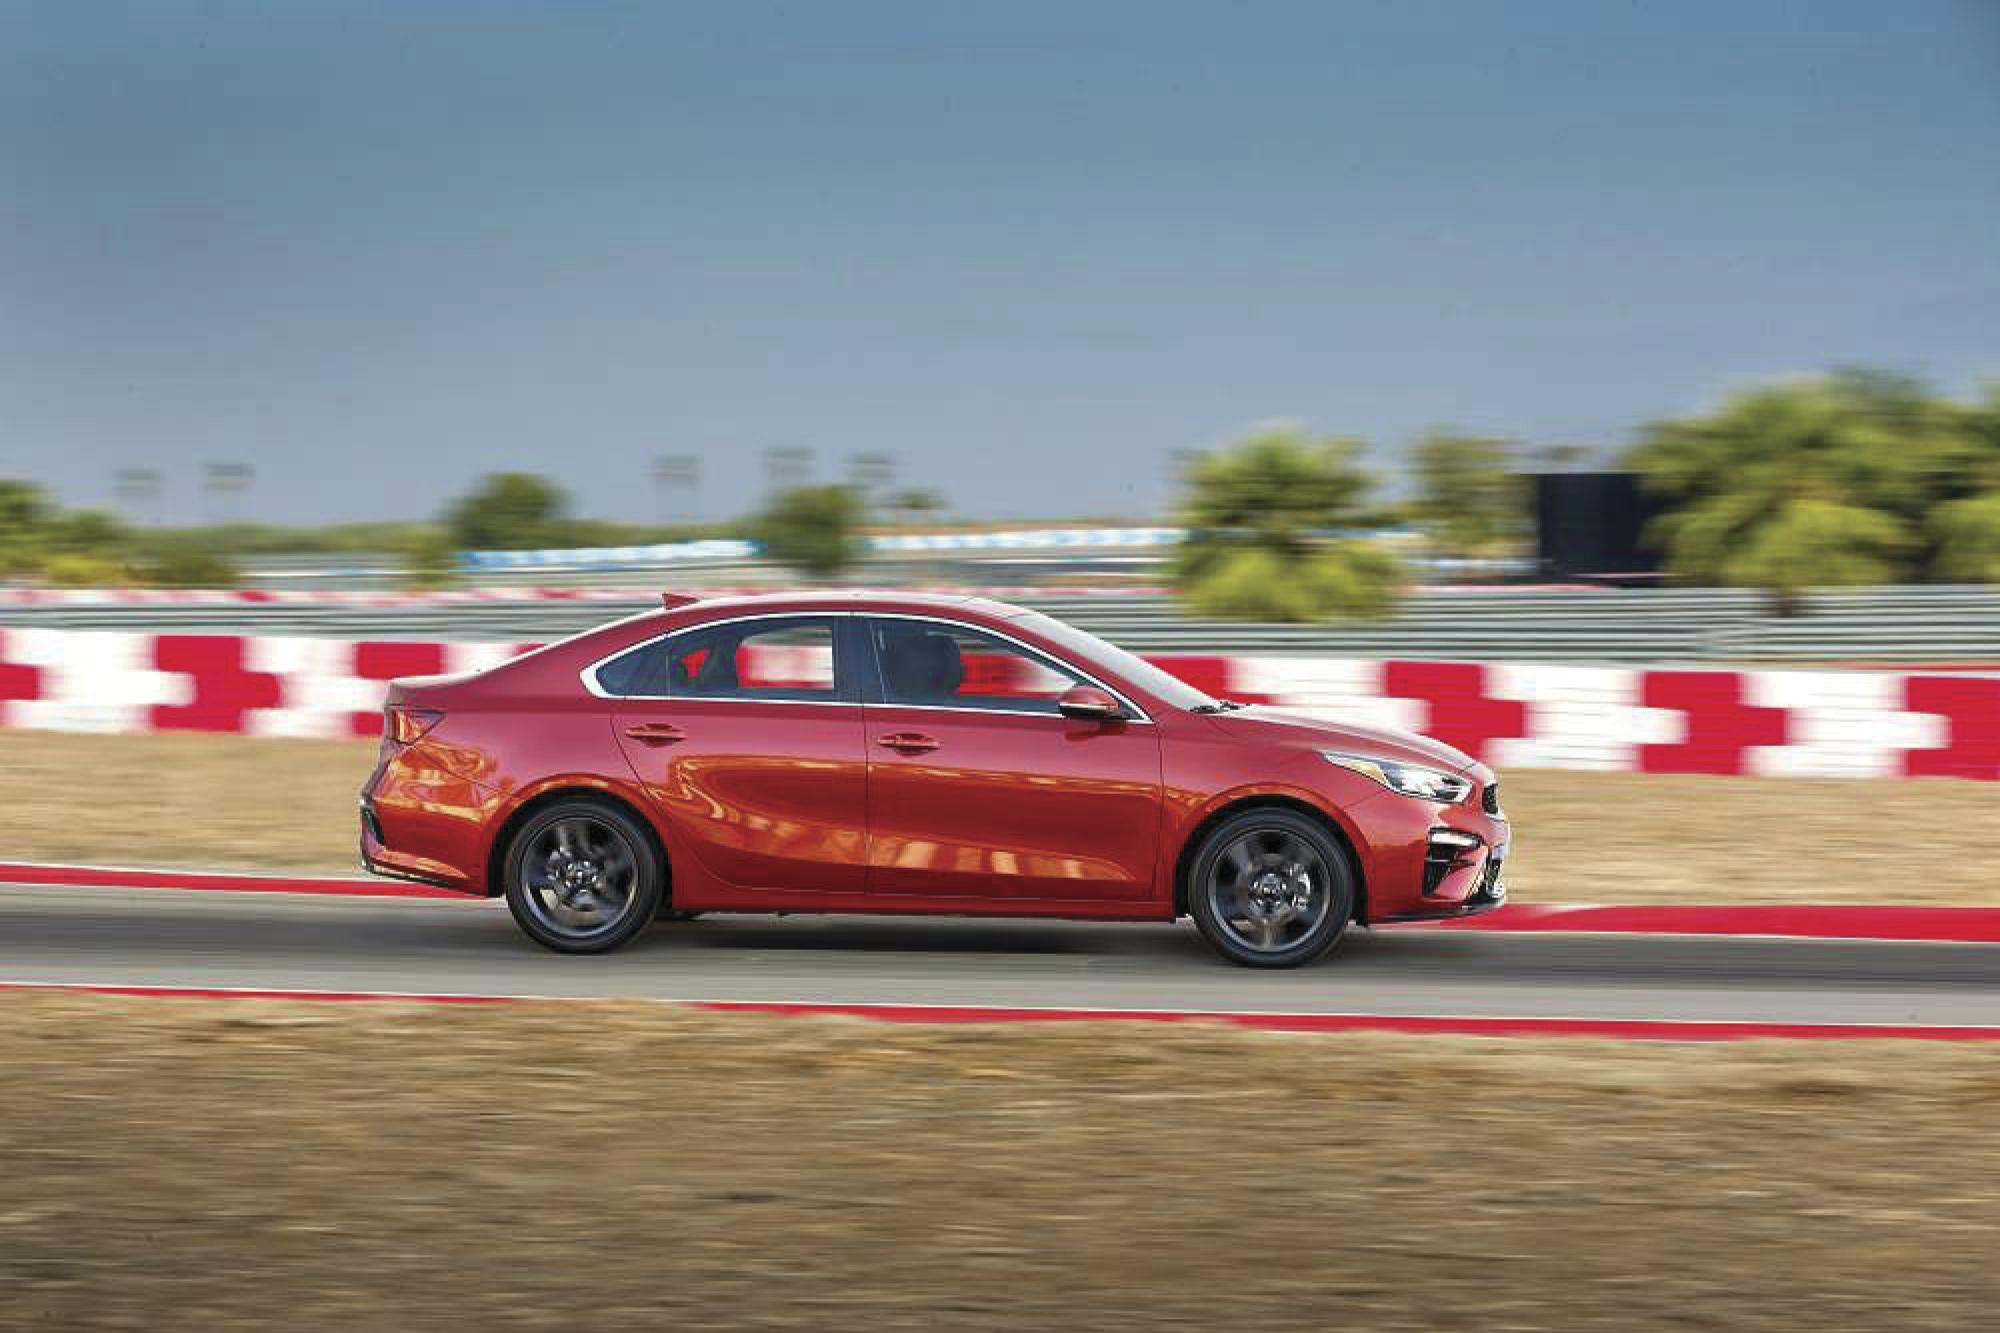 Kia Forte: 2019 model redesigned to resemble the high-performance Stinger